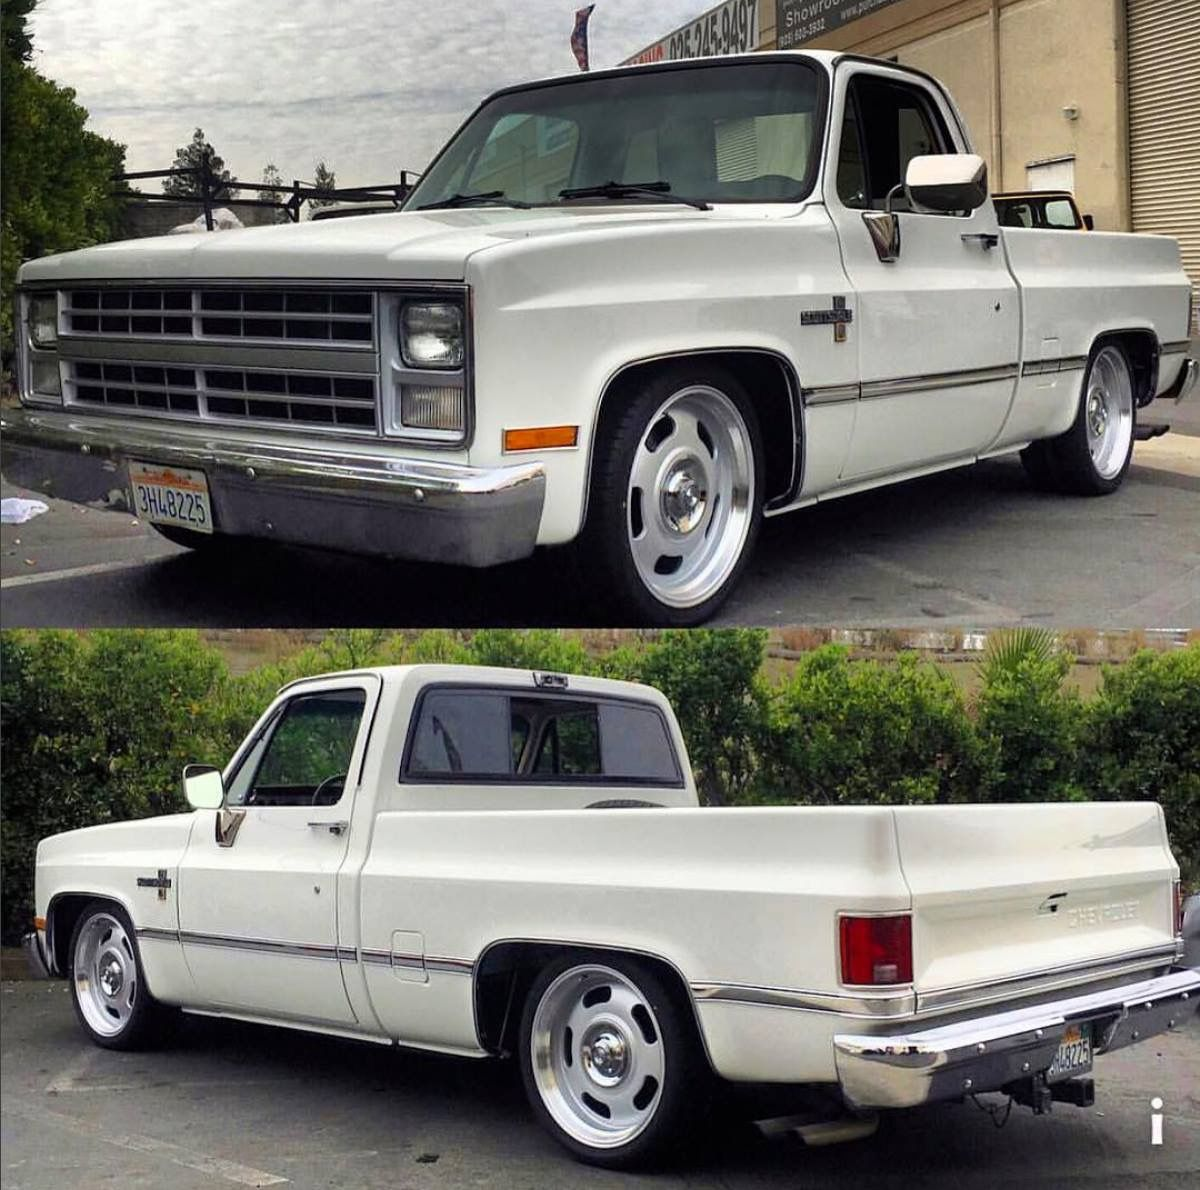 1985 Chevy Swb C10 Truck With Images Chevy Trucks C10 Chevy